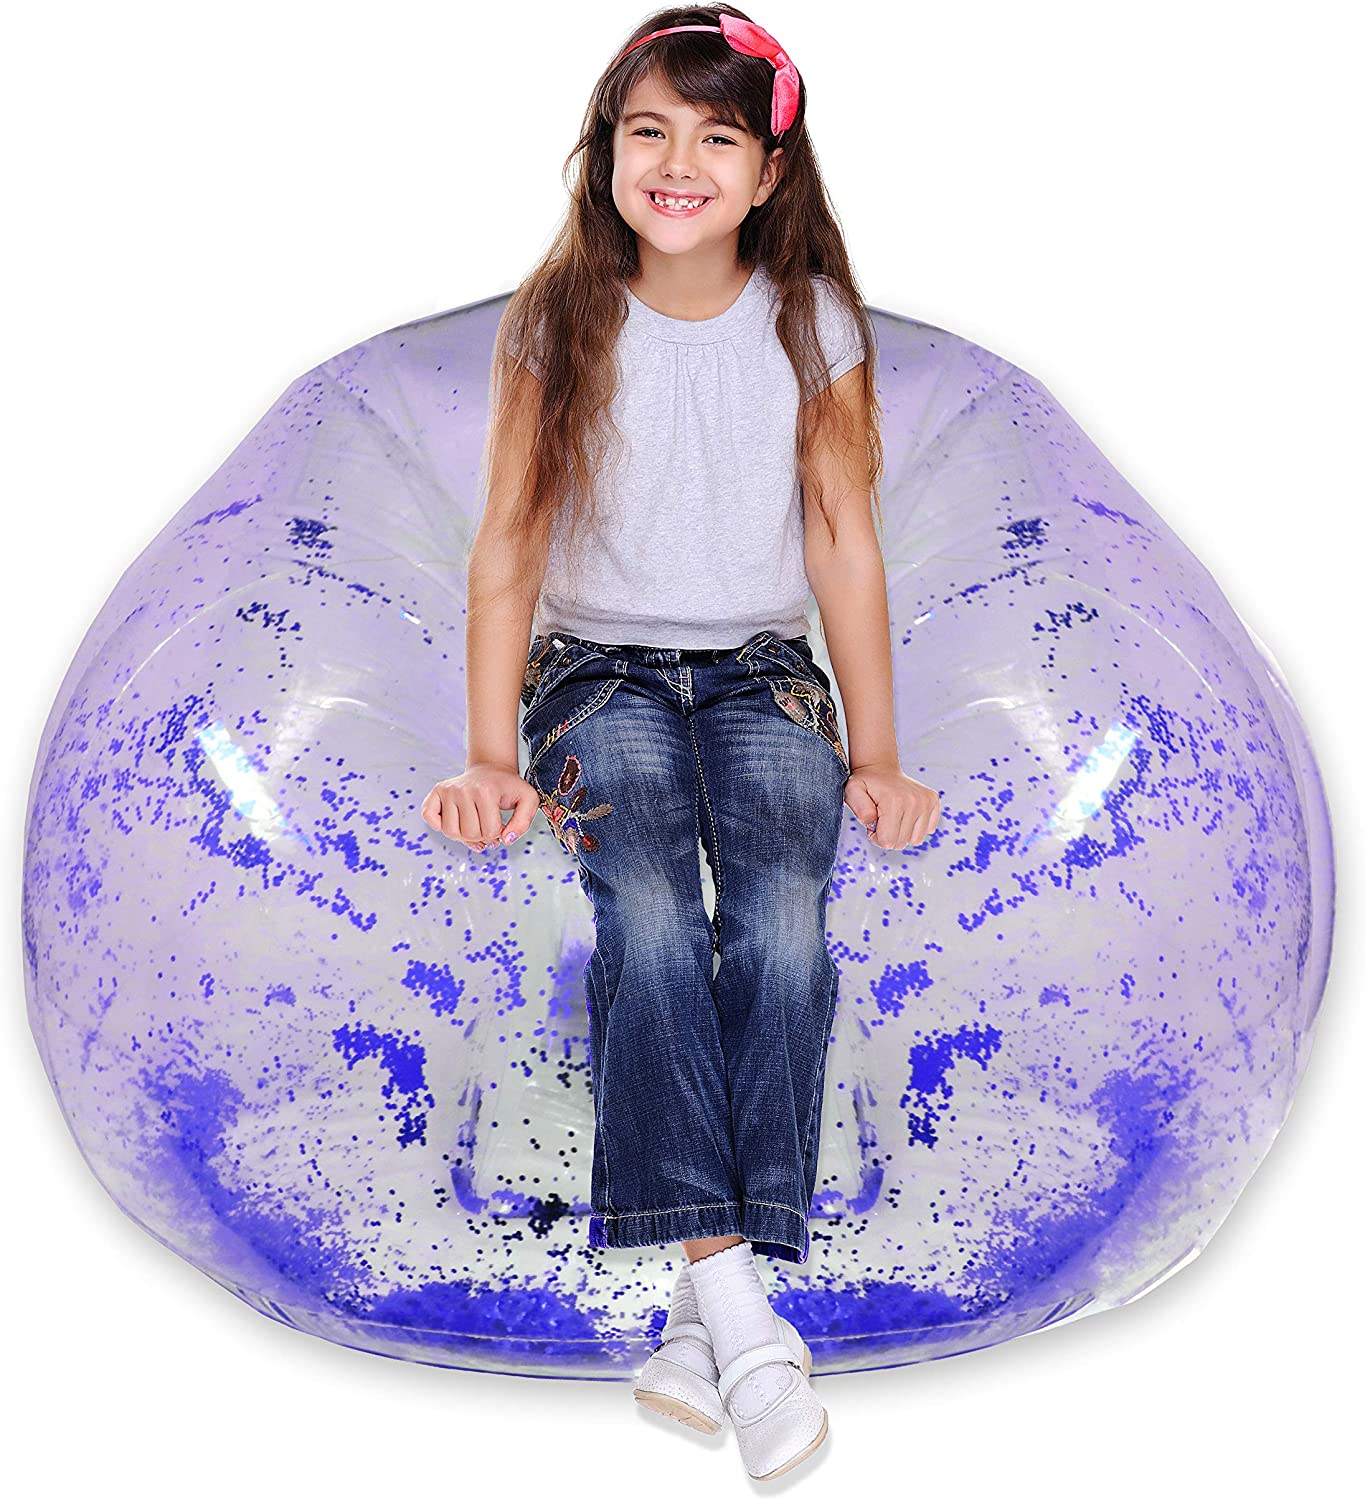 Inflatable Chair - Clear Glitter Inflatable Chair for Kids Bedrooms, Living Rooms, Indoors and Outdoors - Inflatable Chair 90's Style Furniture Glitter Blow Up Chair (Blue)